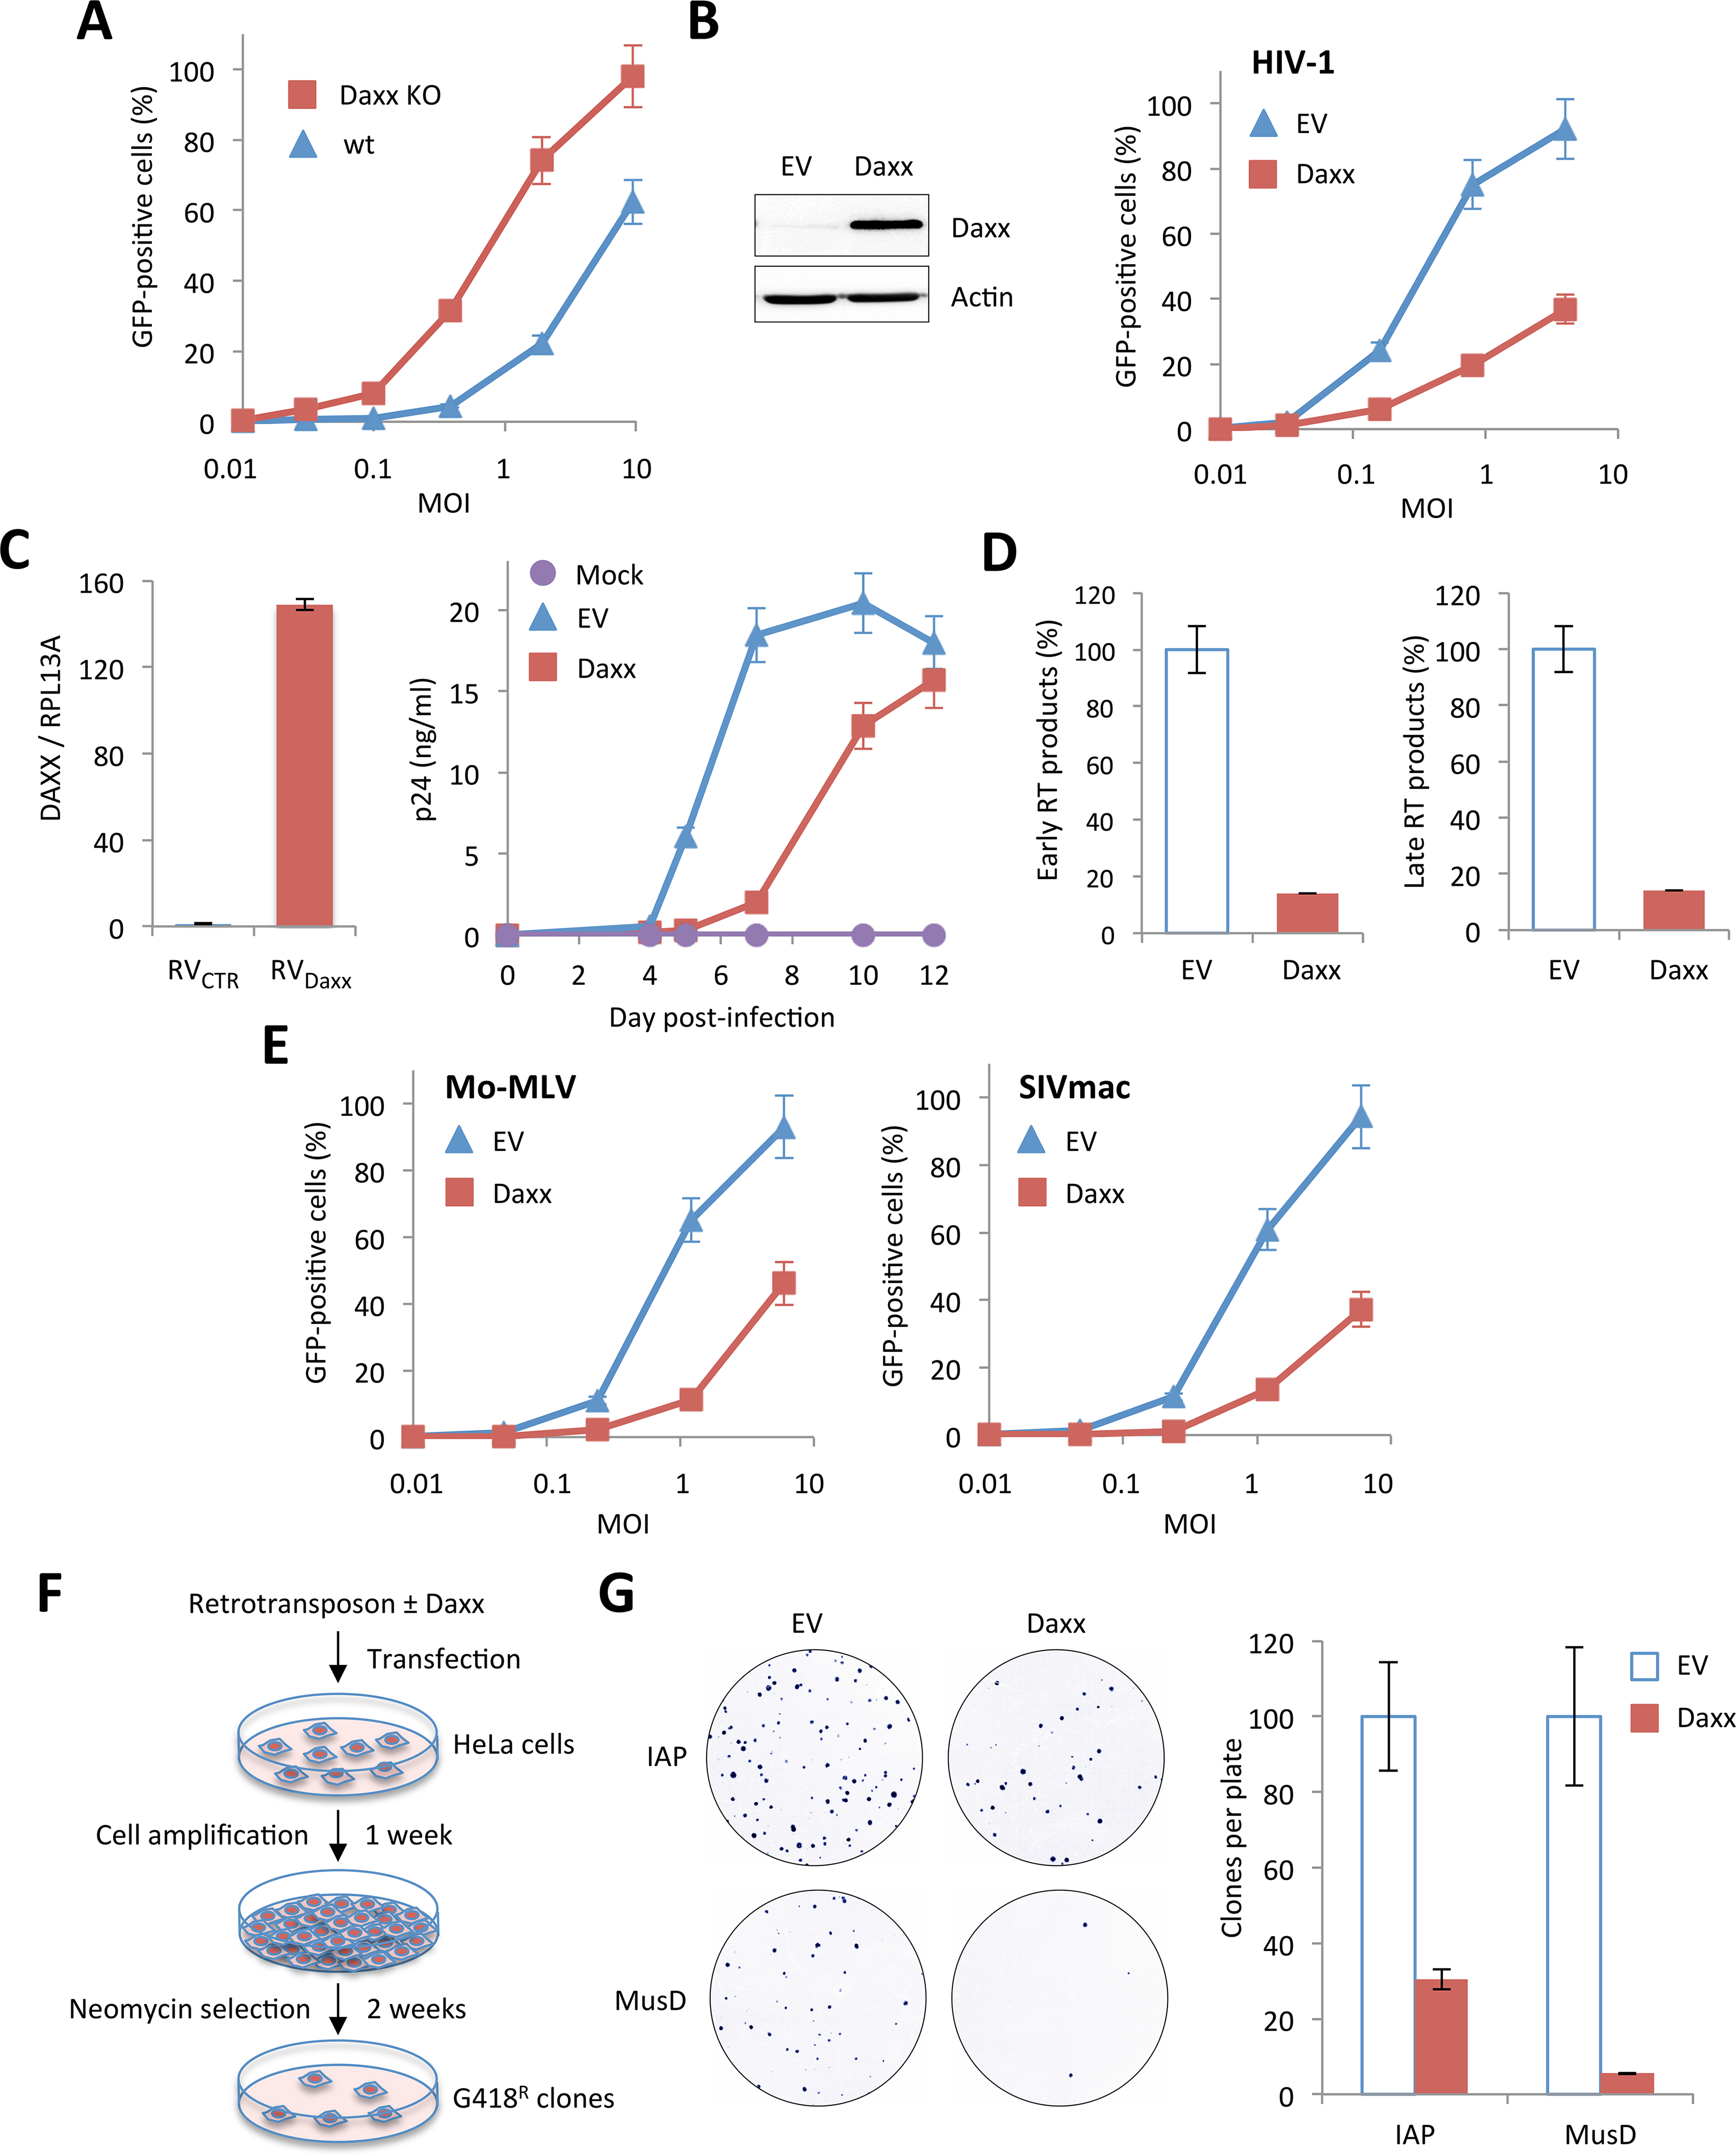 Inhibition of retroviral infections and retro-transposition by Daxx.